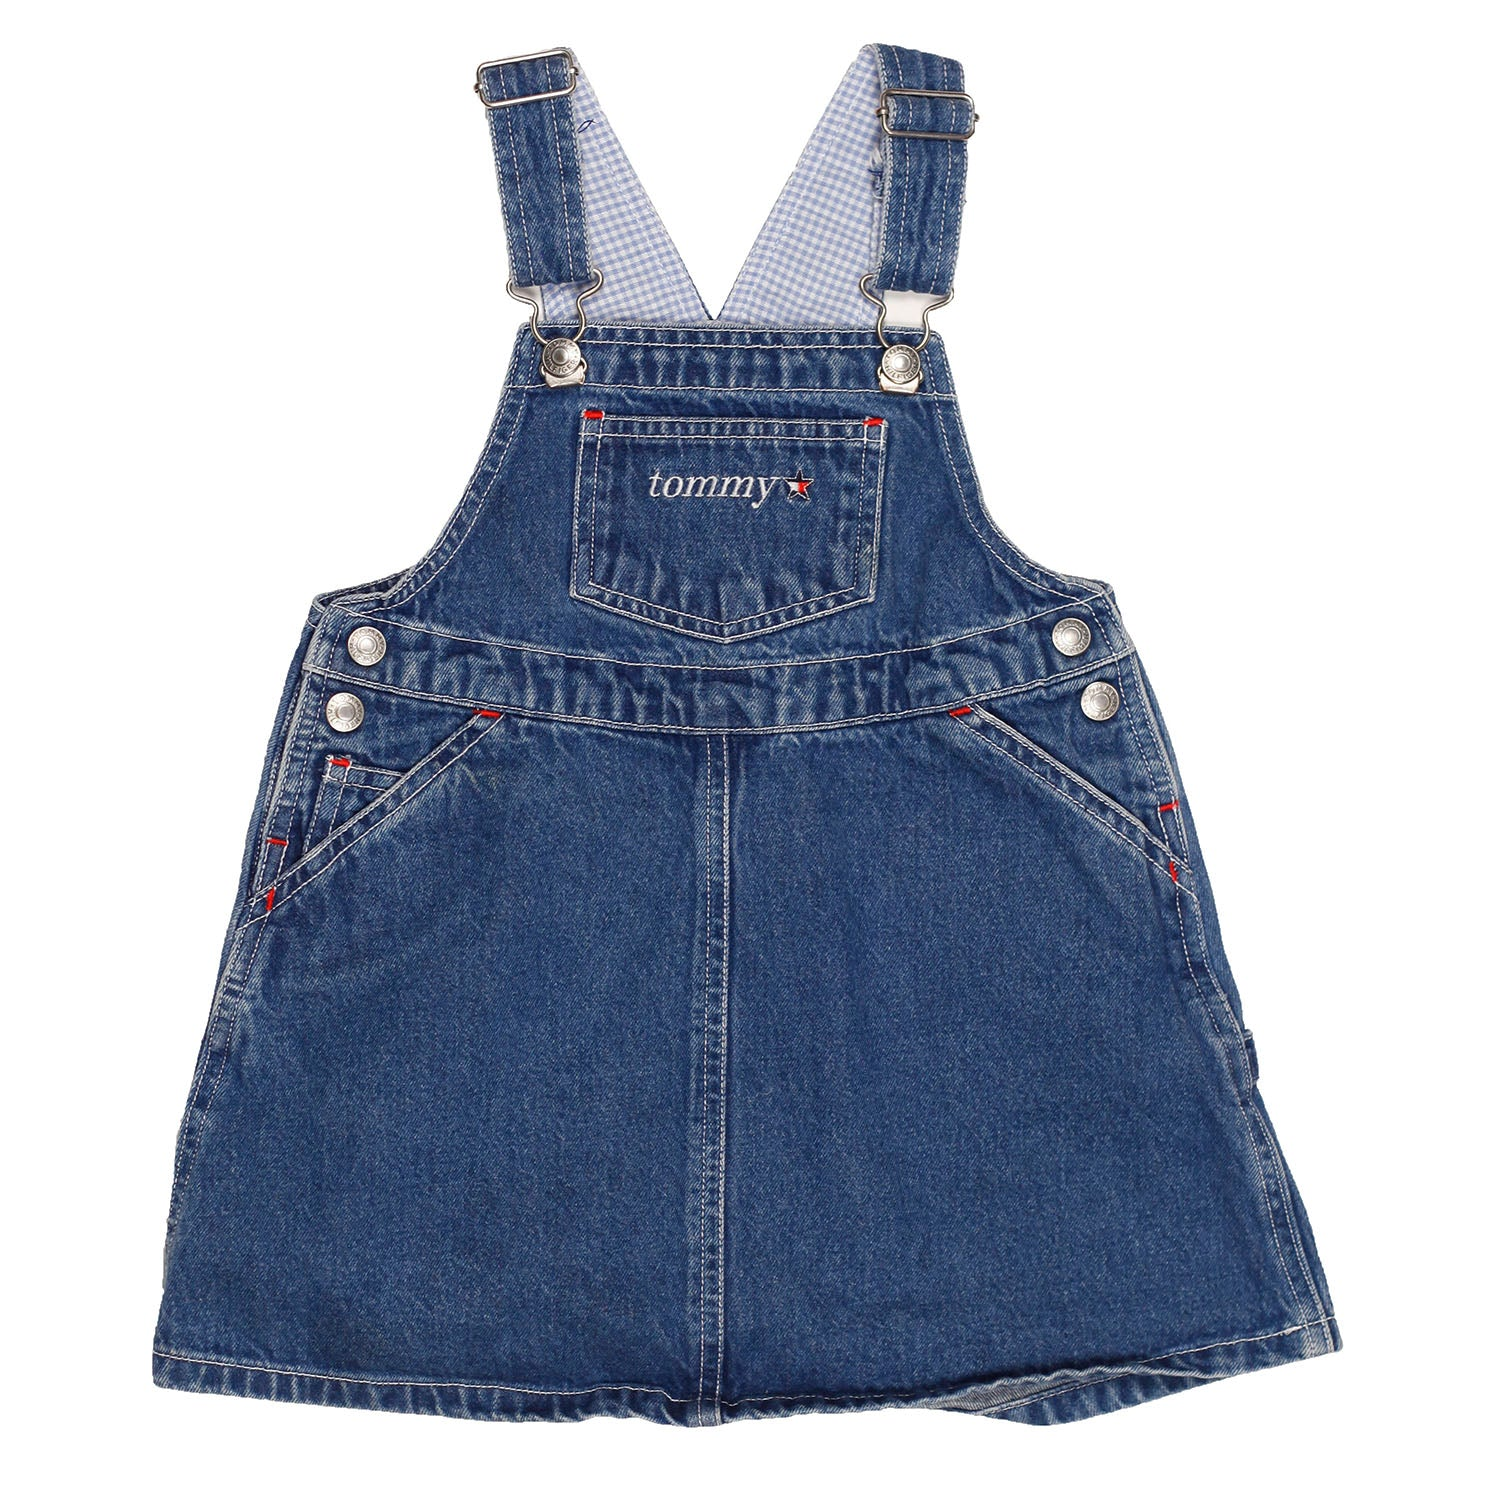 Tommy Hilfiger Denim Overall Dress size size 4T